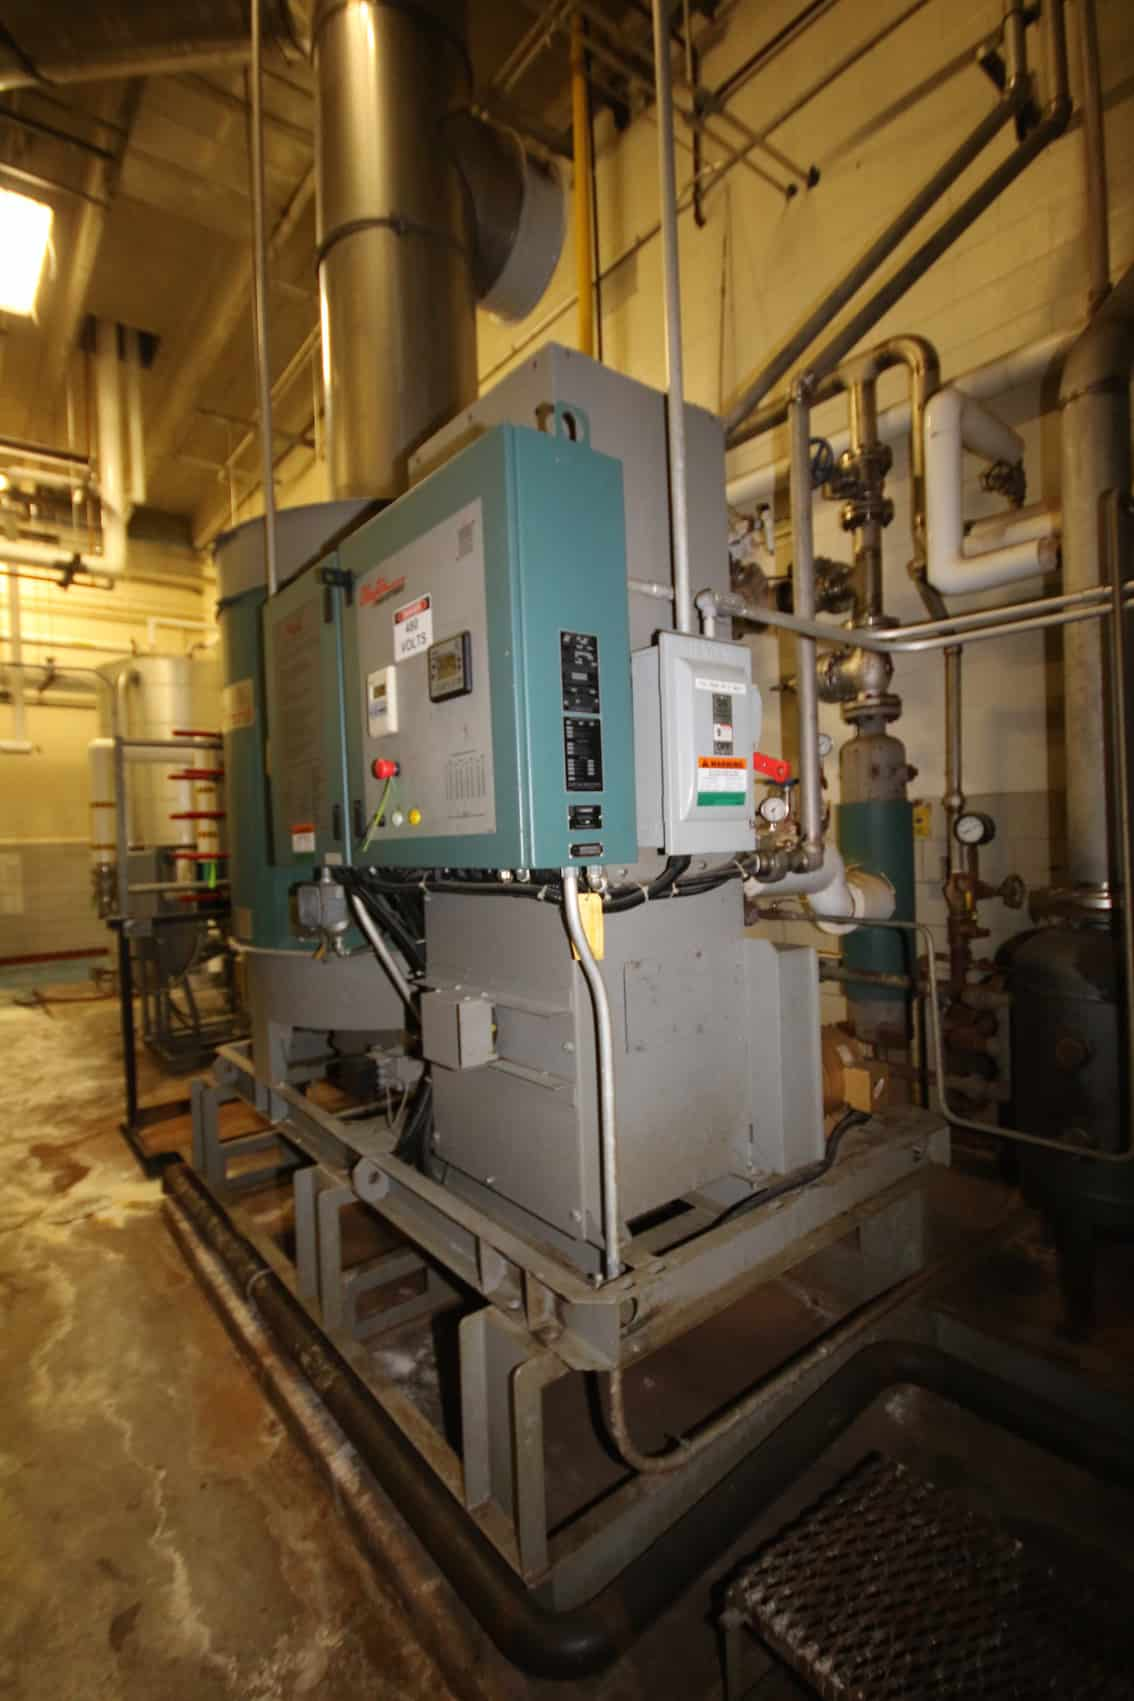 Tanks Cips Pumps Amp Processing Equipment Apr 5